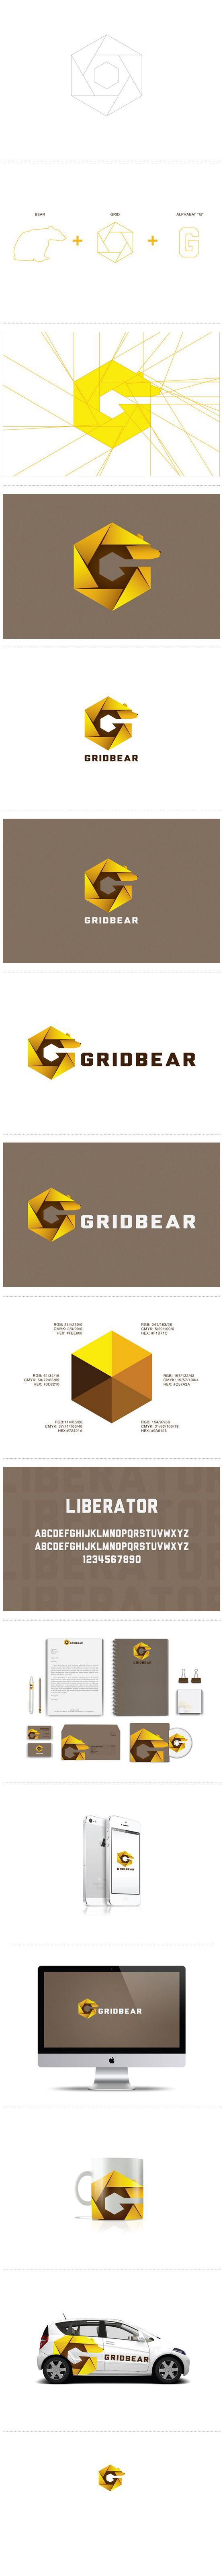 *View Higher Quality at http://www.behance.net/gallery/Grid-Bear-Corporate-Identity/7225423  Grid Bear - Corporate and Brand Identity Development